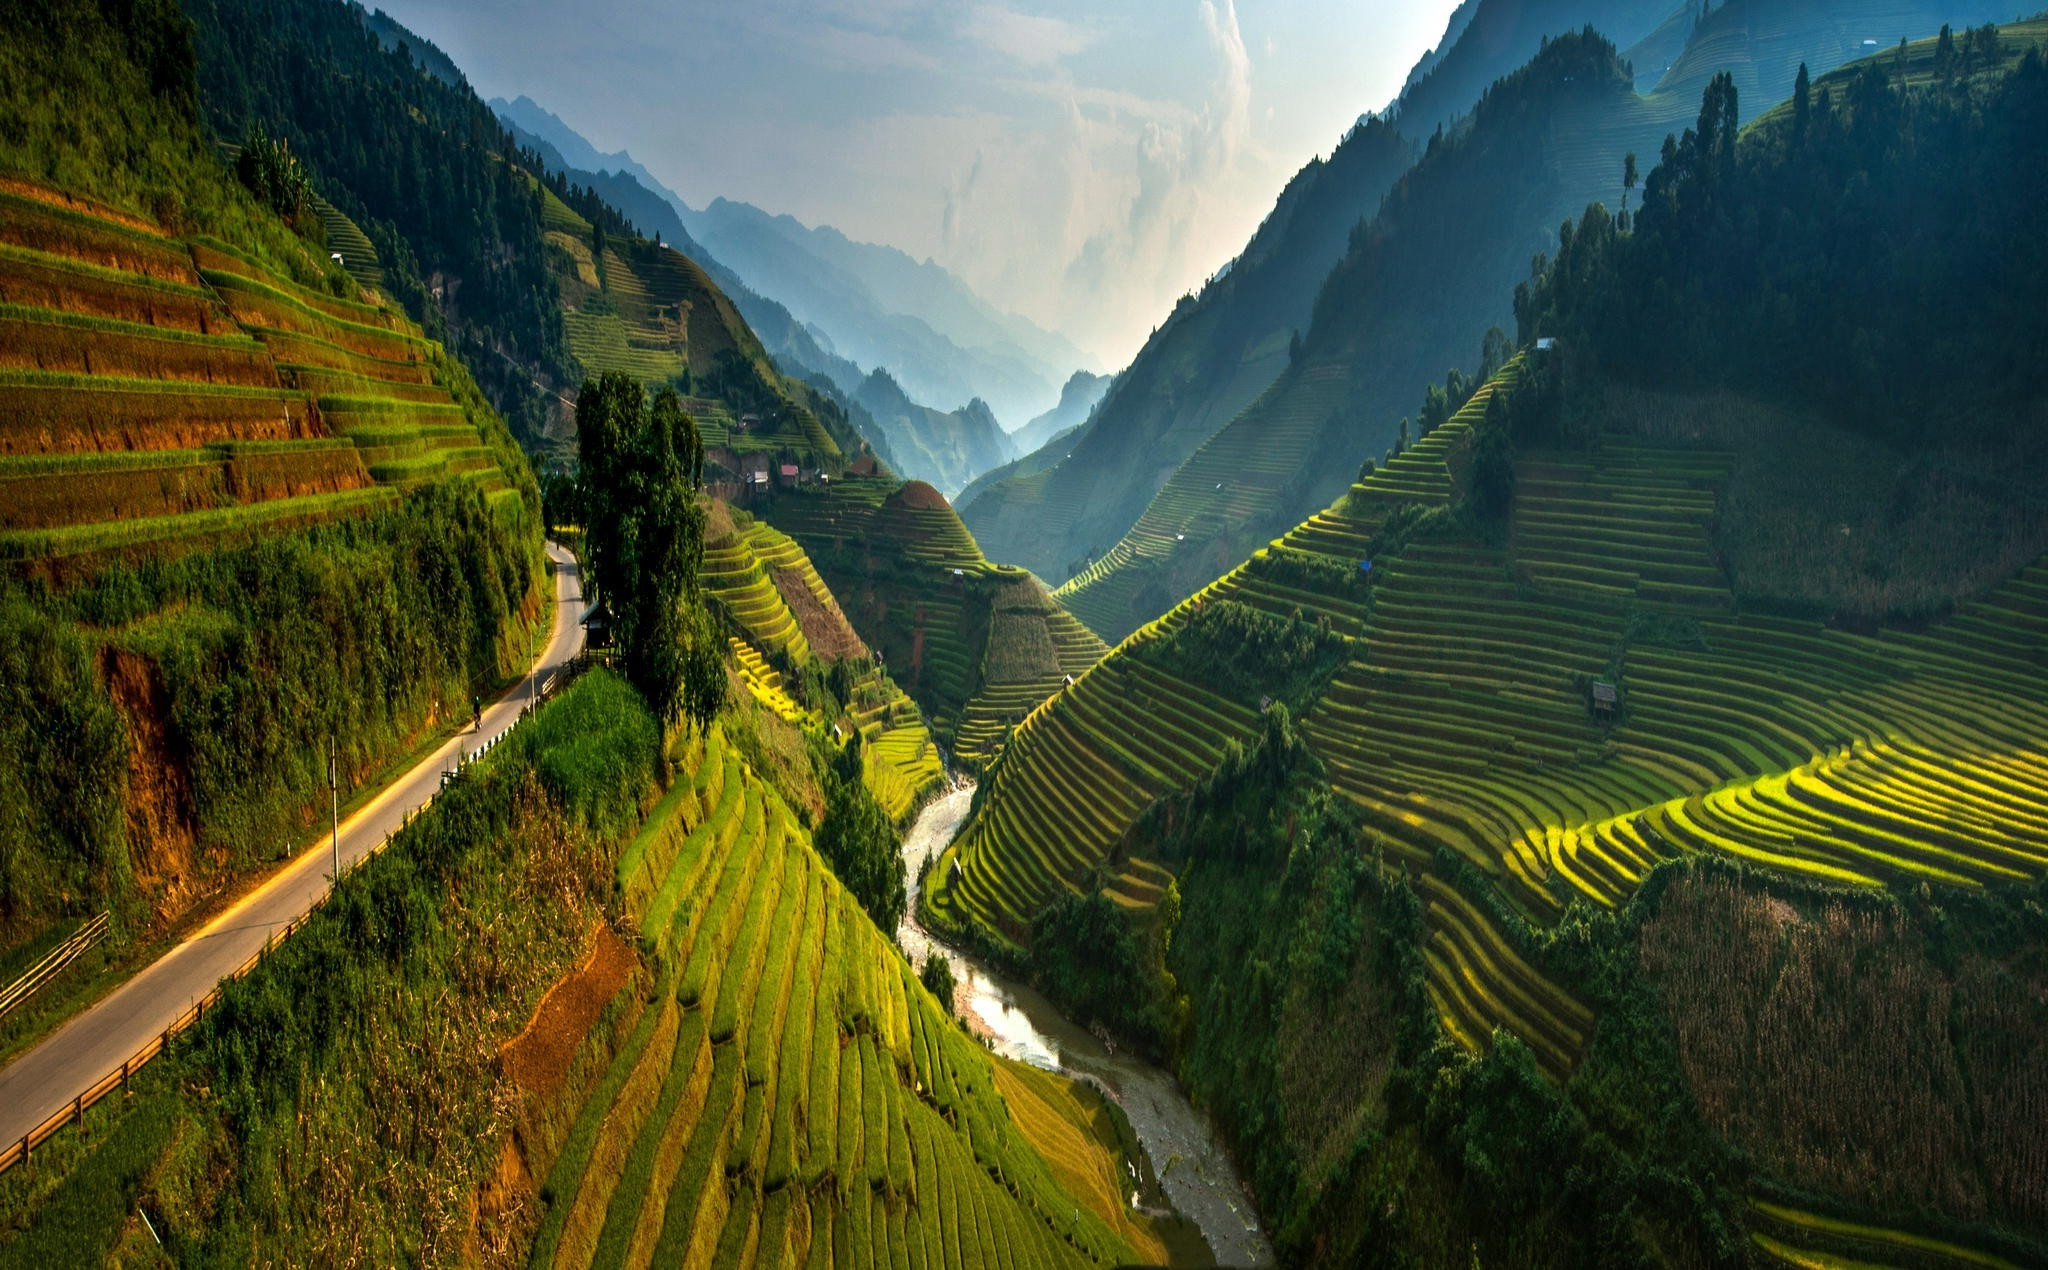 2048x1270 rice Paddy, Terraces, Valley, Vietnam, Mountain, Road, Mist, River, Green,  Trees, Spring, Landscape, Nature Wallpapers HD / Desktop and Mobile  Backgrounds